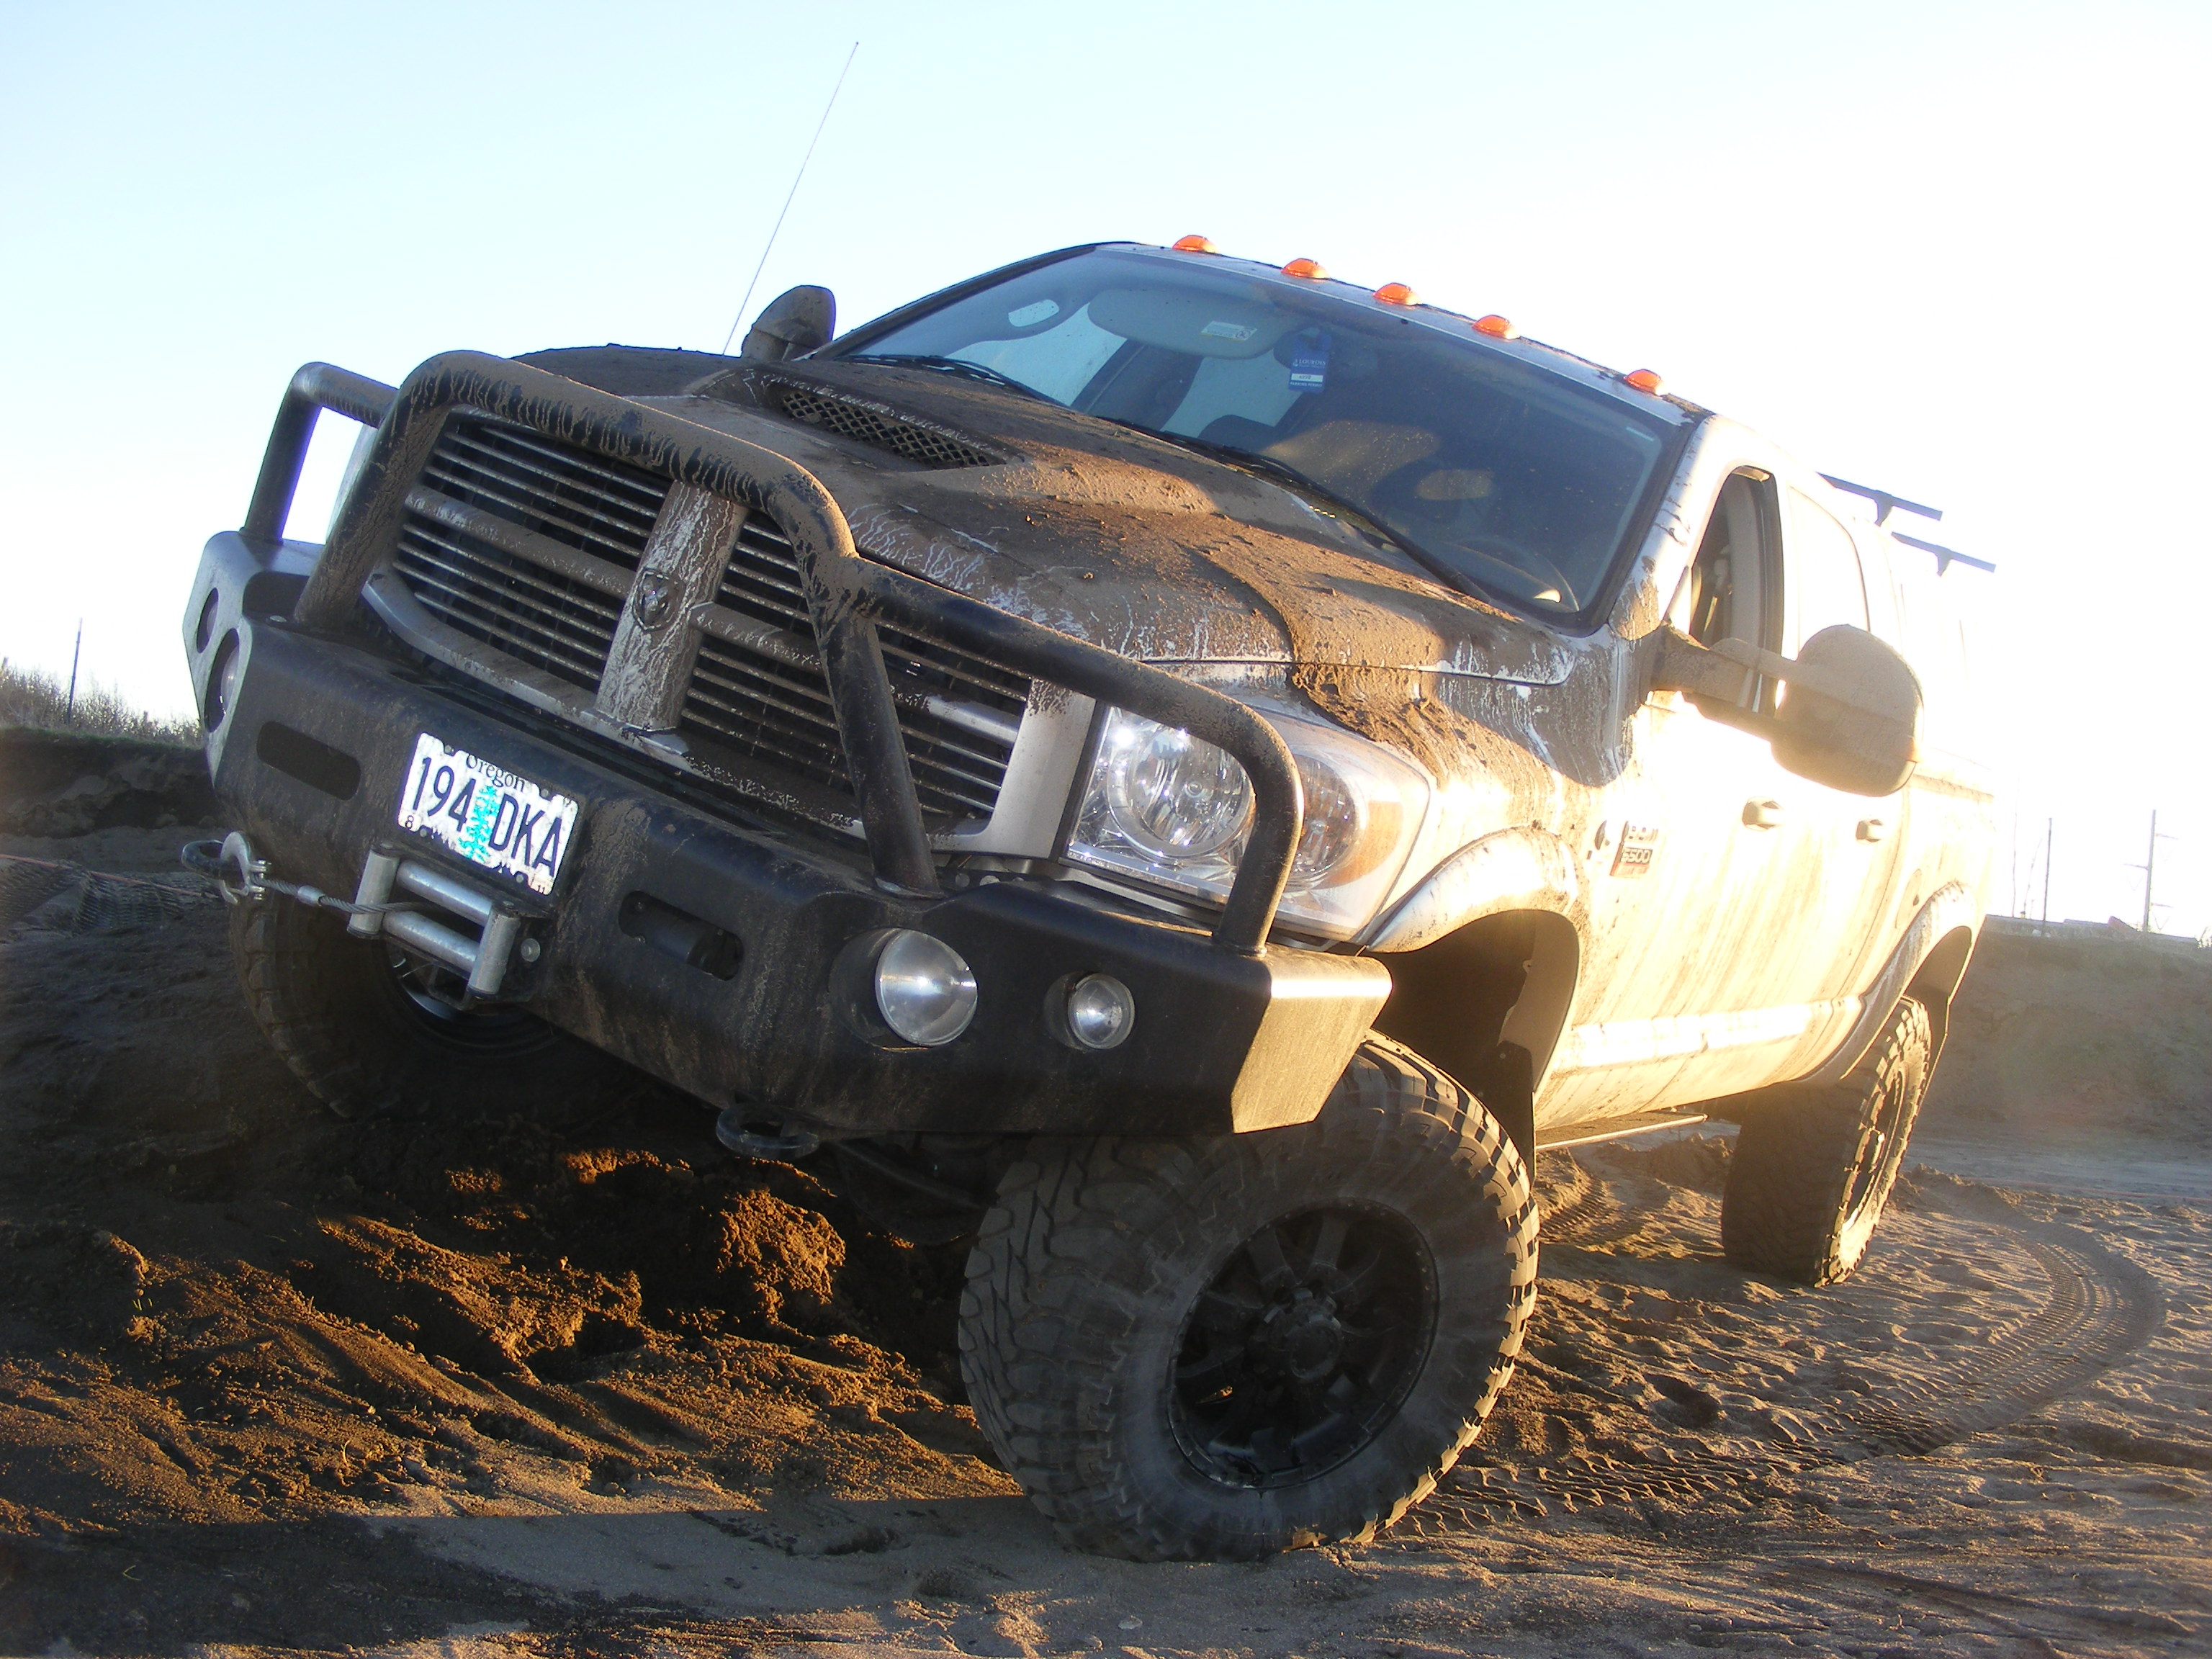 Dodge Bumpers From Buckstop Truckware For Off Road Ram More